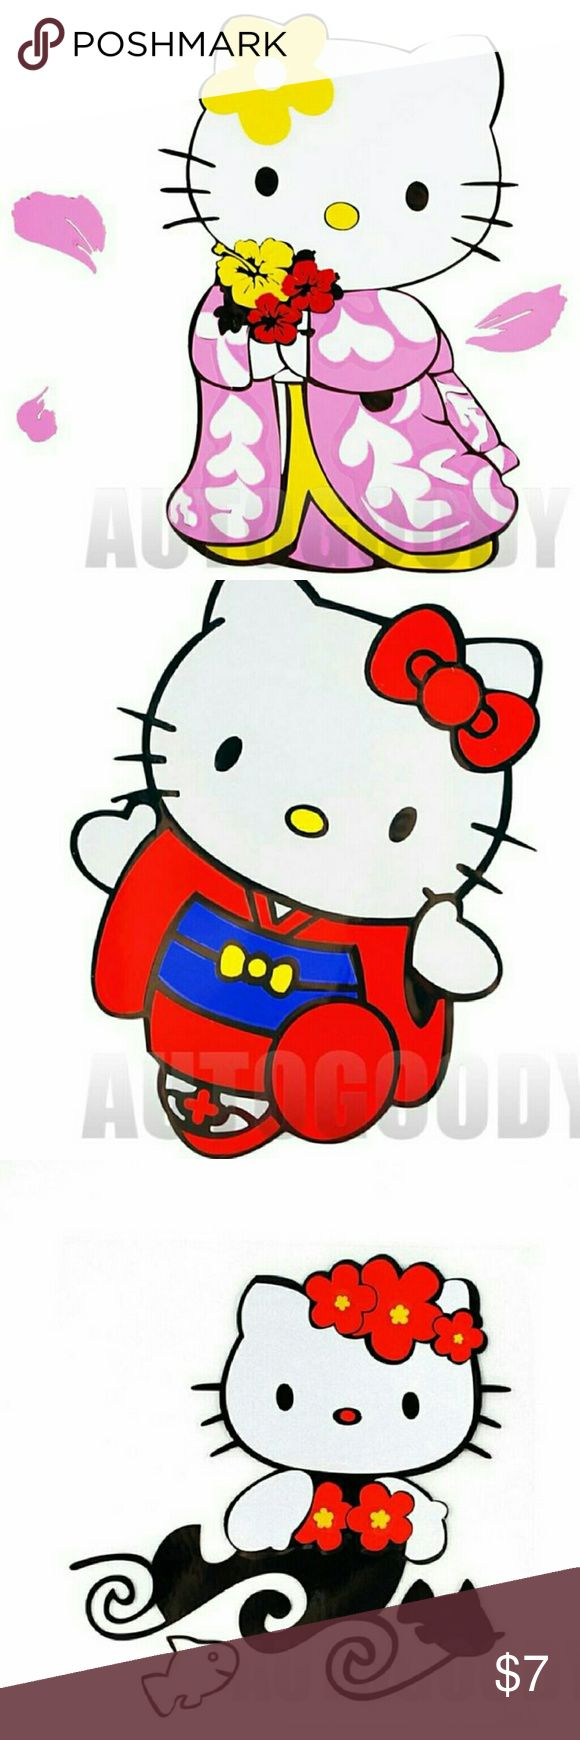 1 pc. Hello Kitty Colored Vinyl Decal 1 Pc (4 styles to select from)   1 (3x4) ) Hello Kitty Vinyl Colored Teddy & Kitty Decal  1 (3.5 x 4.5) Hello Kitty Vinyl Colored Red Male Kimono Decal  1 PC HELLO KITTY PINK KIMONO VINYL Hello Kitty Accessories